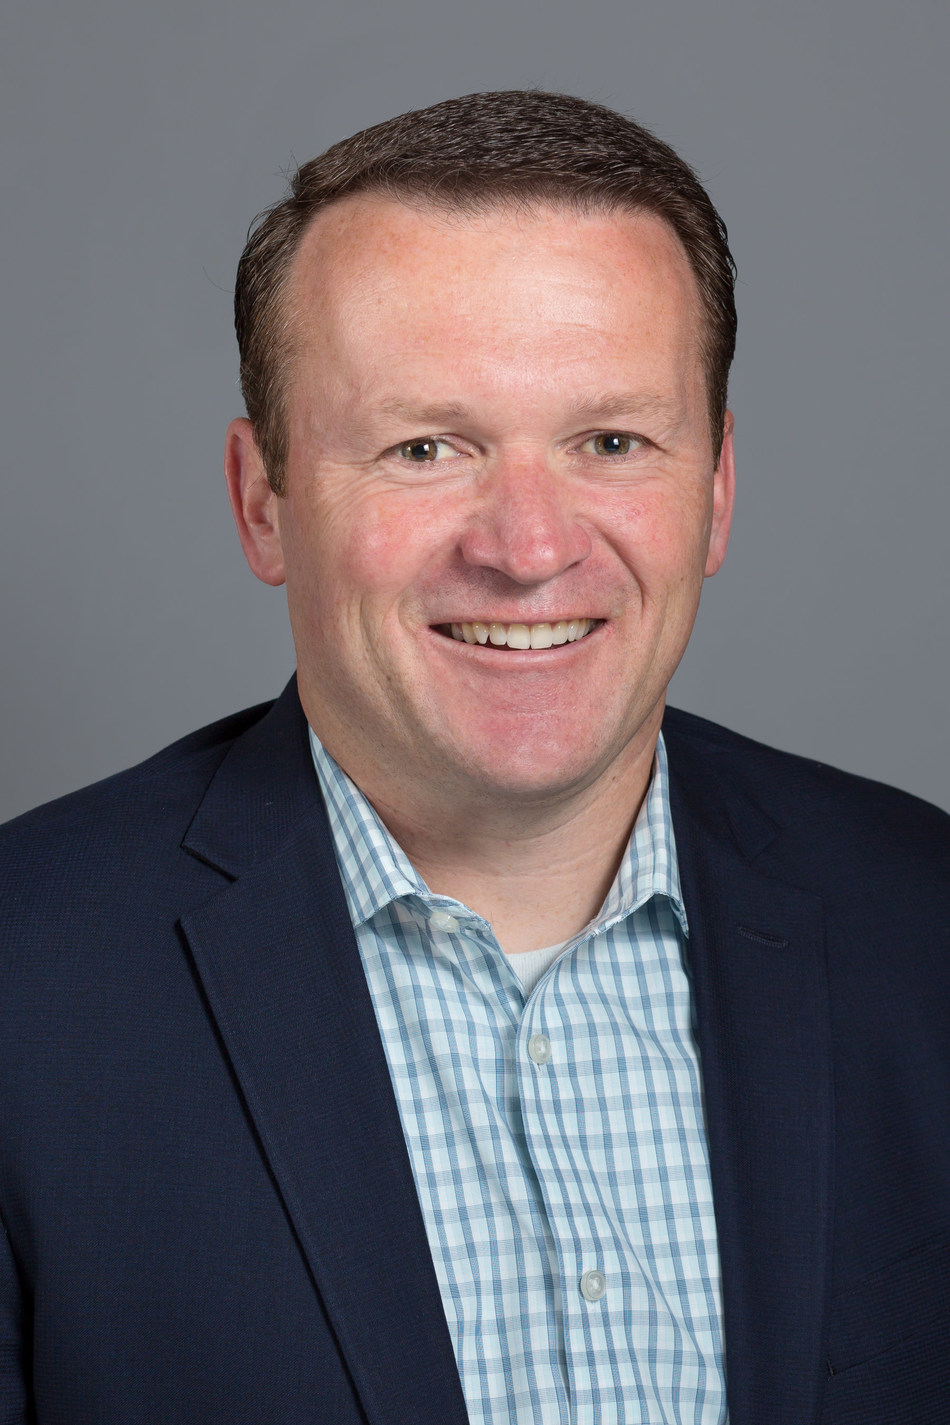 David Abbott has been promoted to national vice president Key Account Management at Astellas.